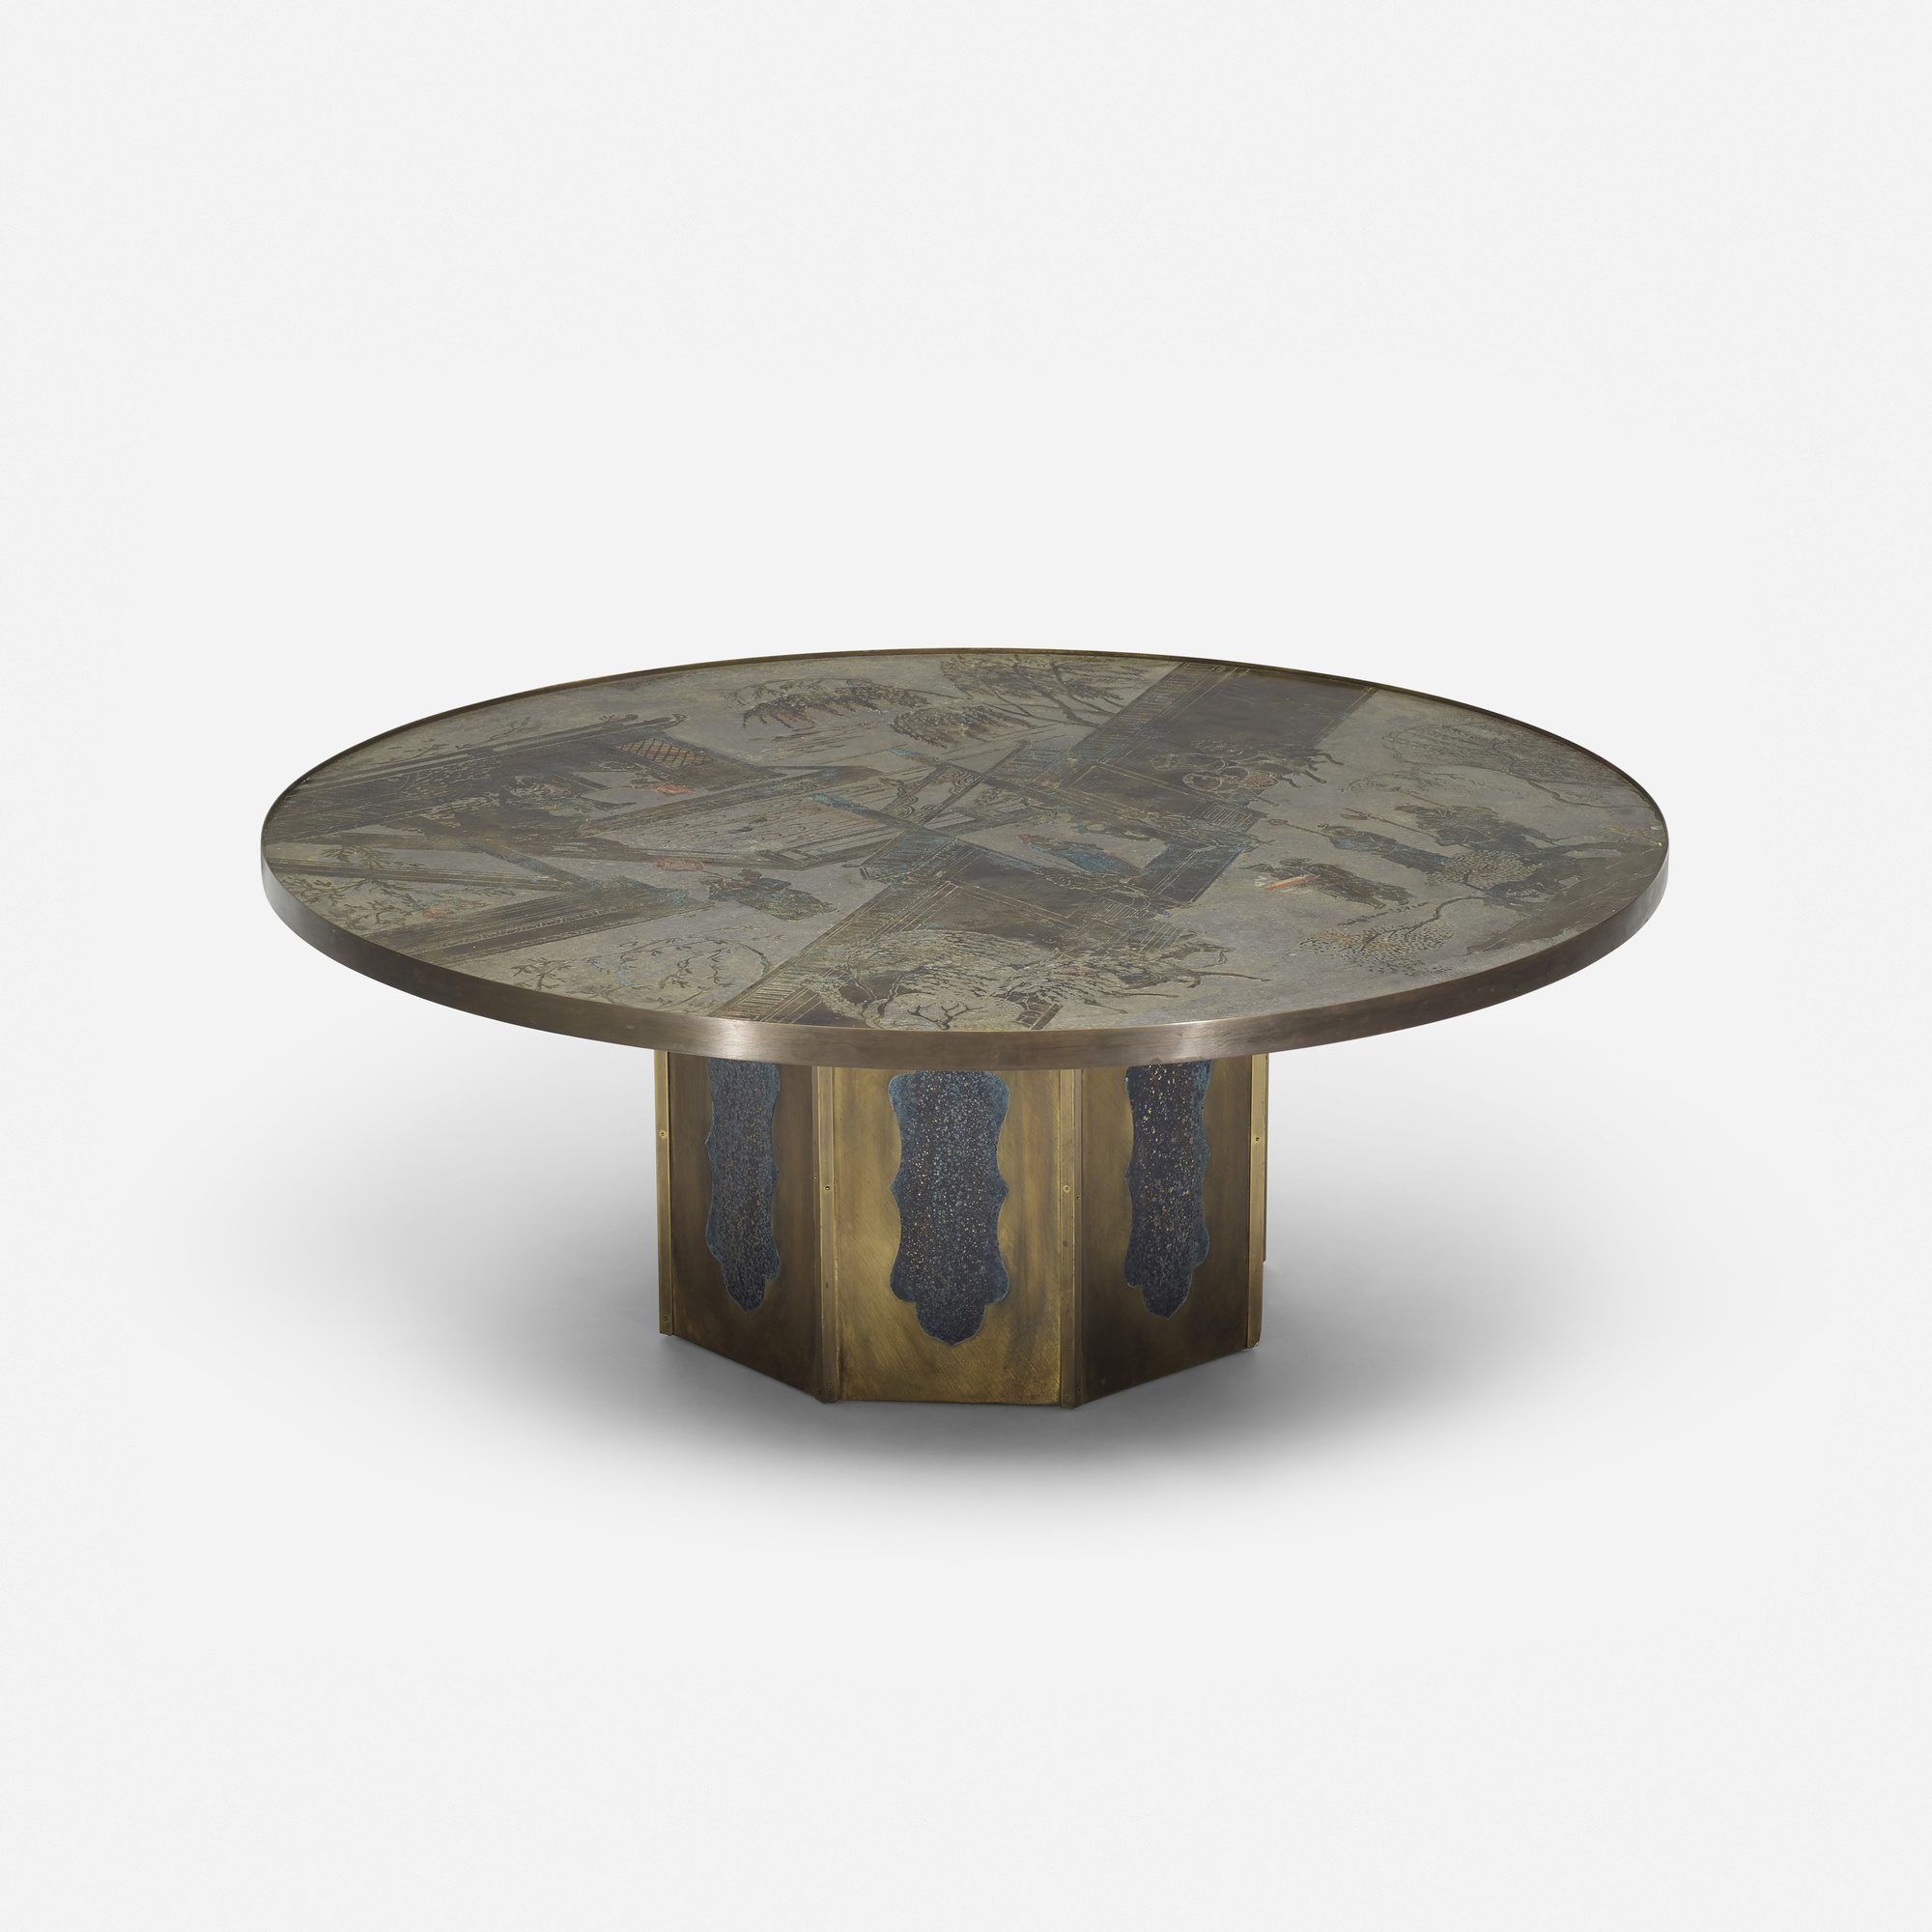 327: Philip and Kelvin LaVerne / Chan coffee table (1 of 4)